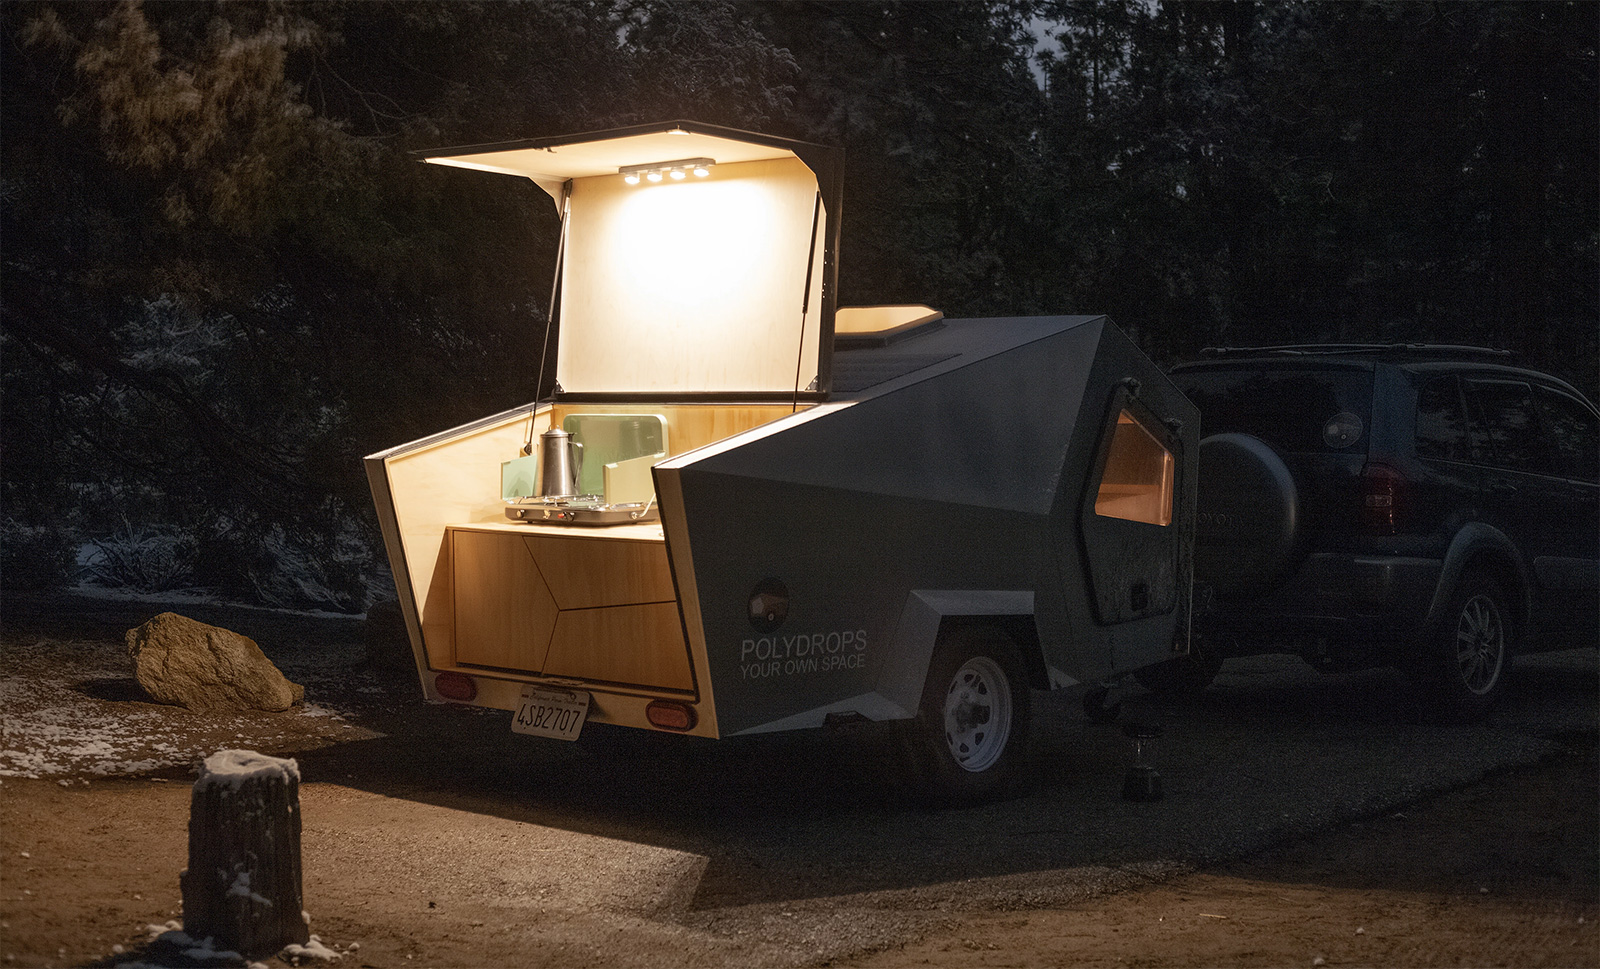 The Polydrop camper has an aluminium shell that makes it lightweight for towing